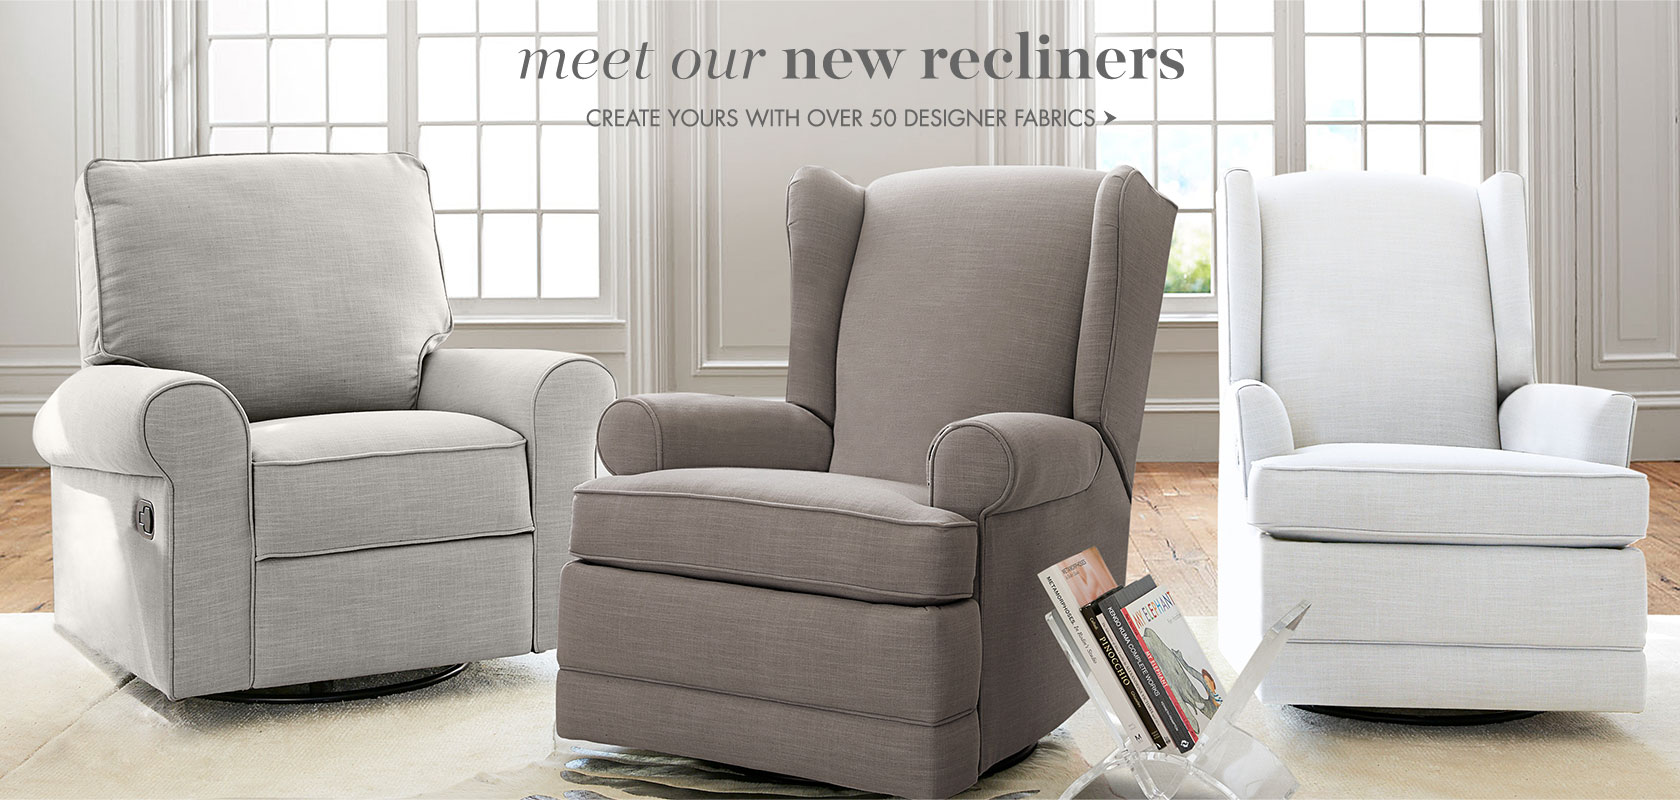 Meet our new recliners